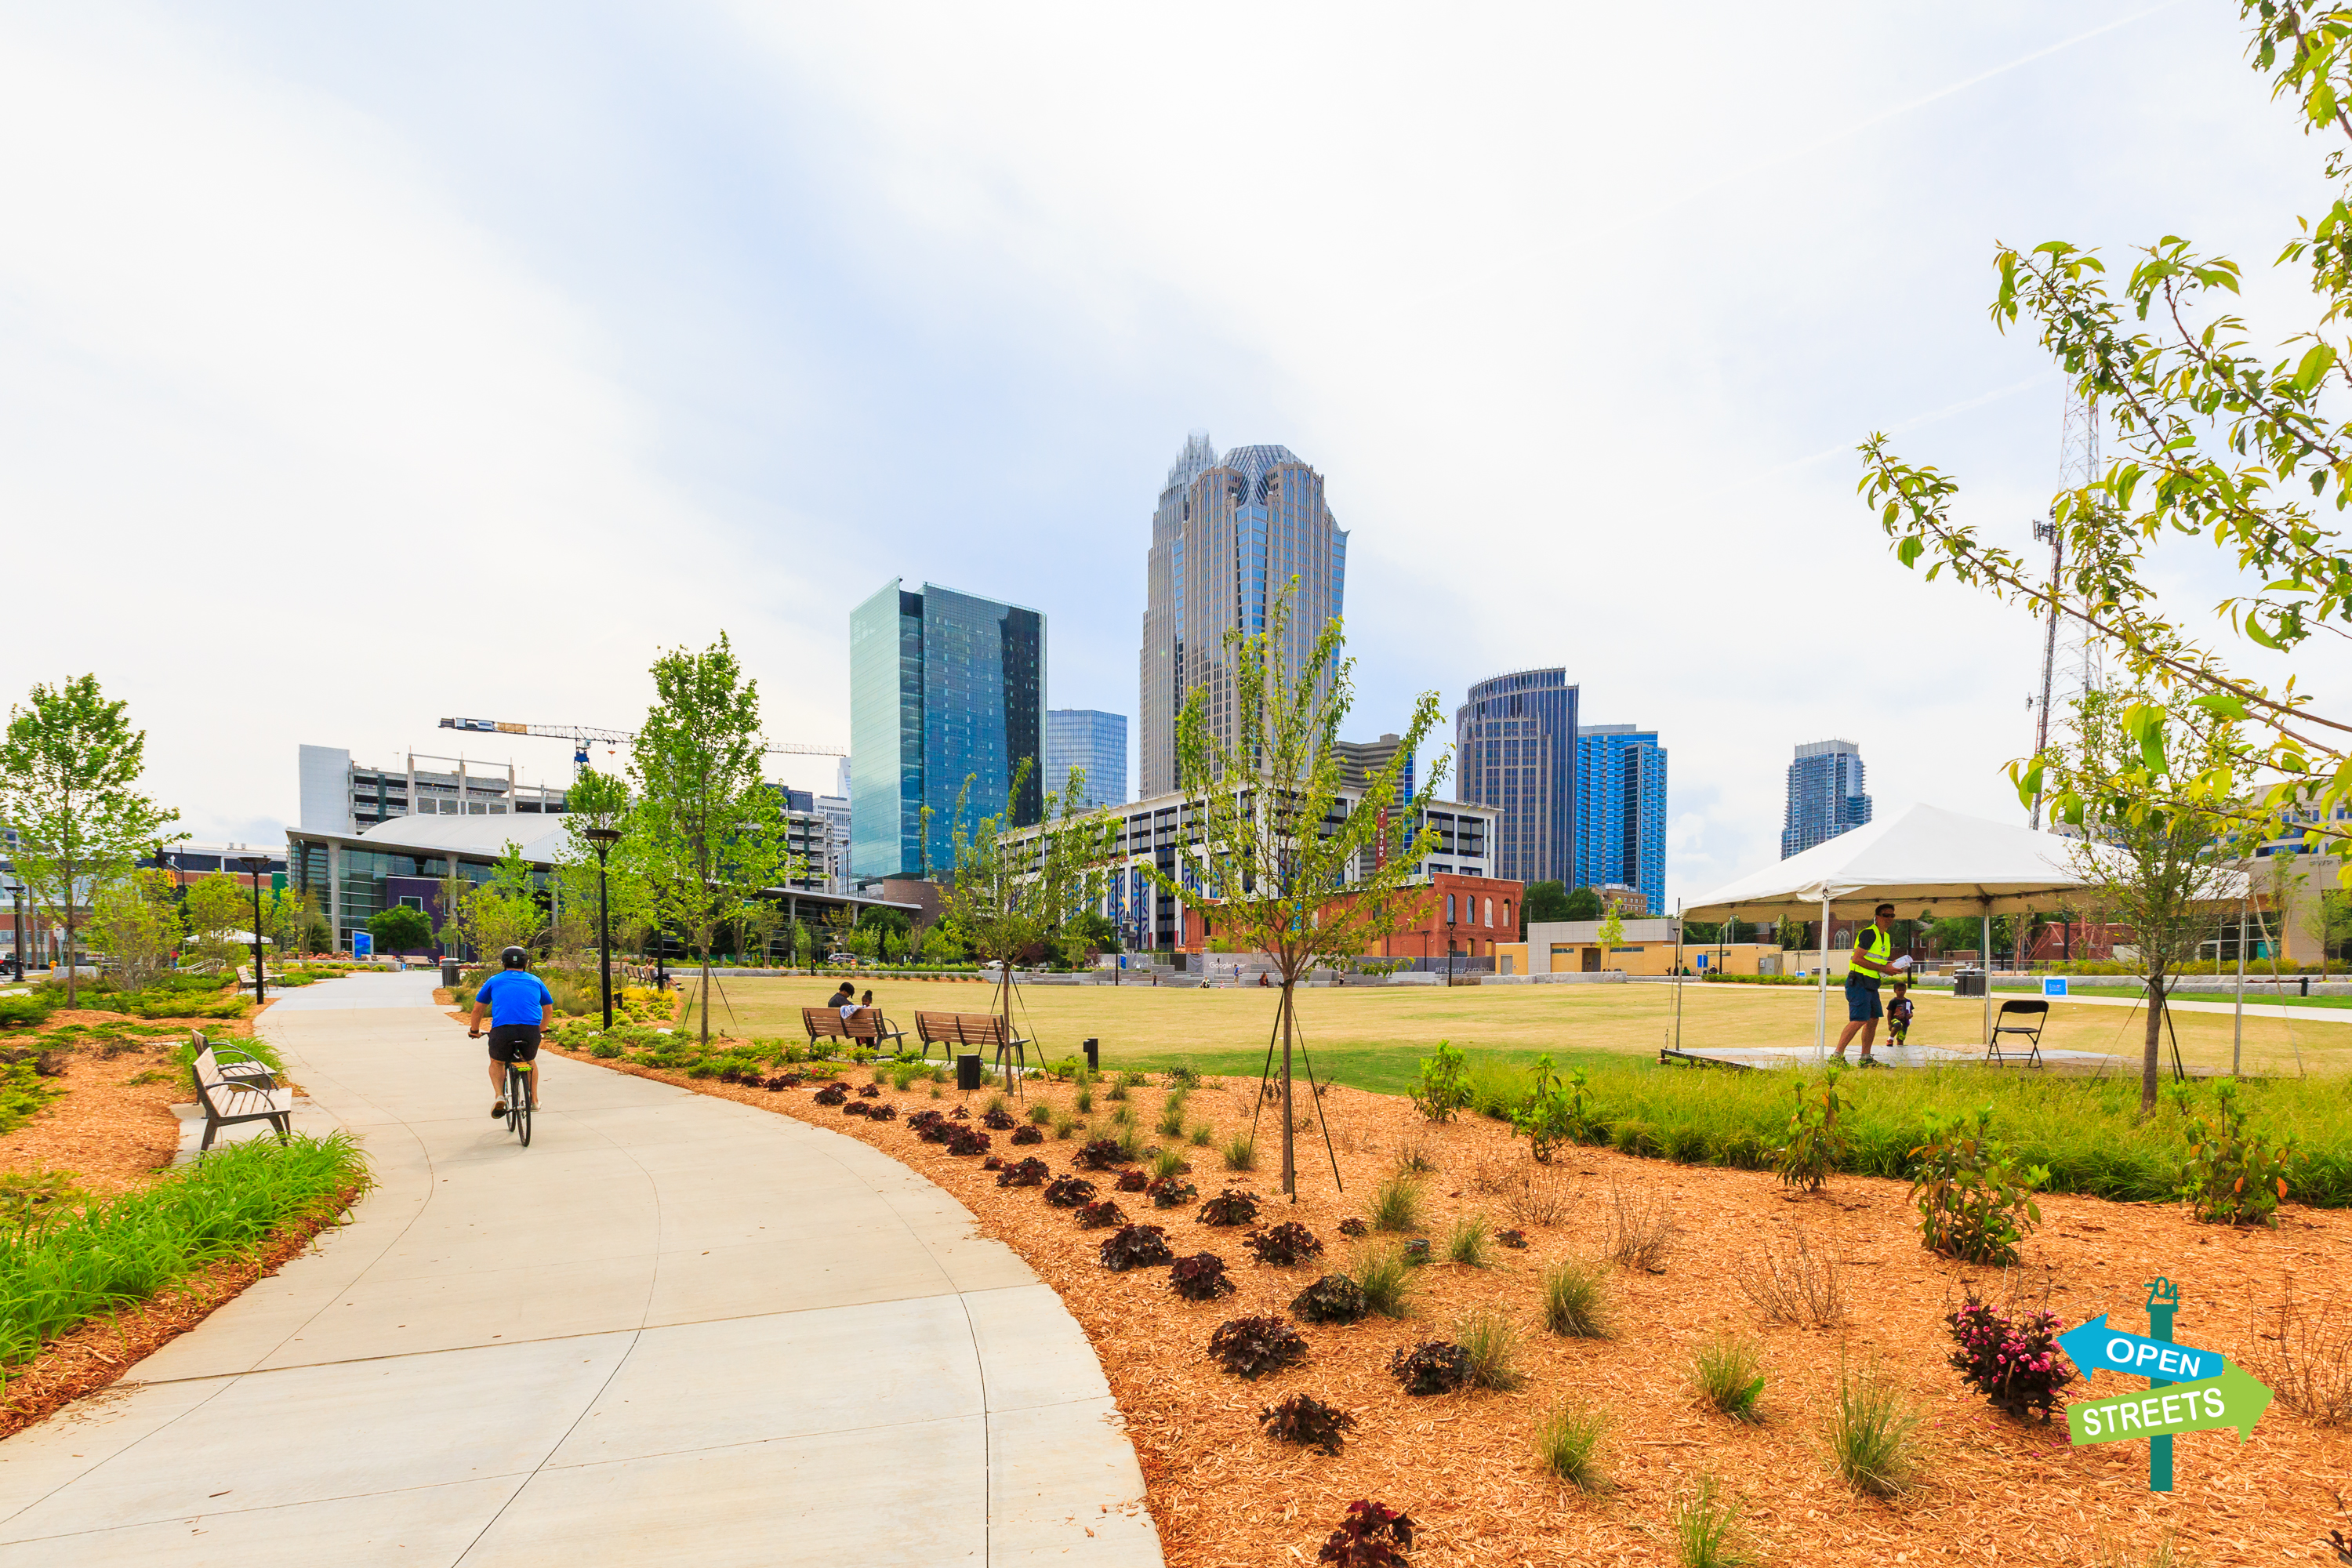 Open Streets-6887 by Mecklenburg County